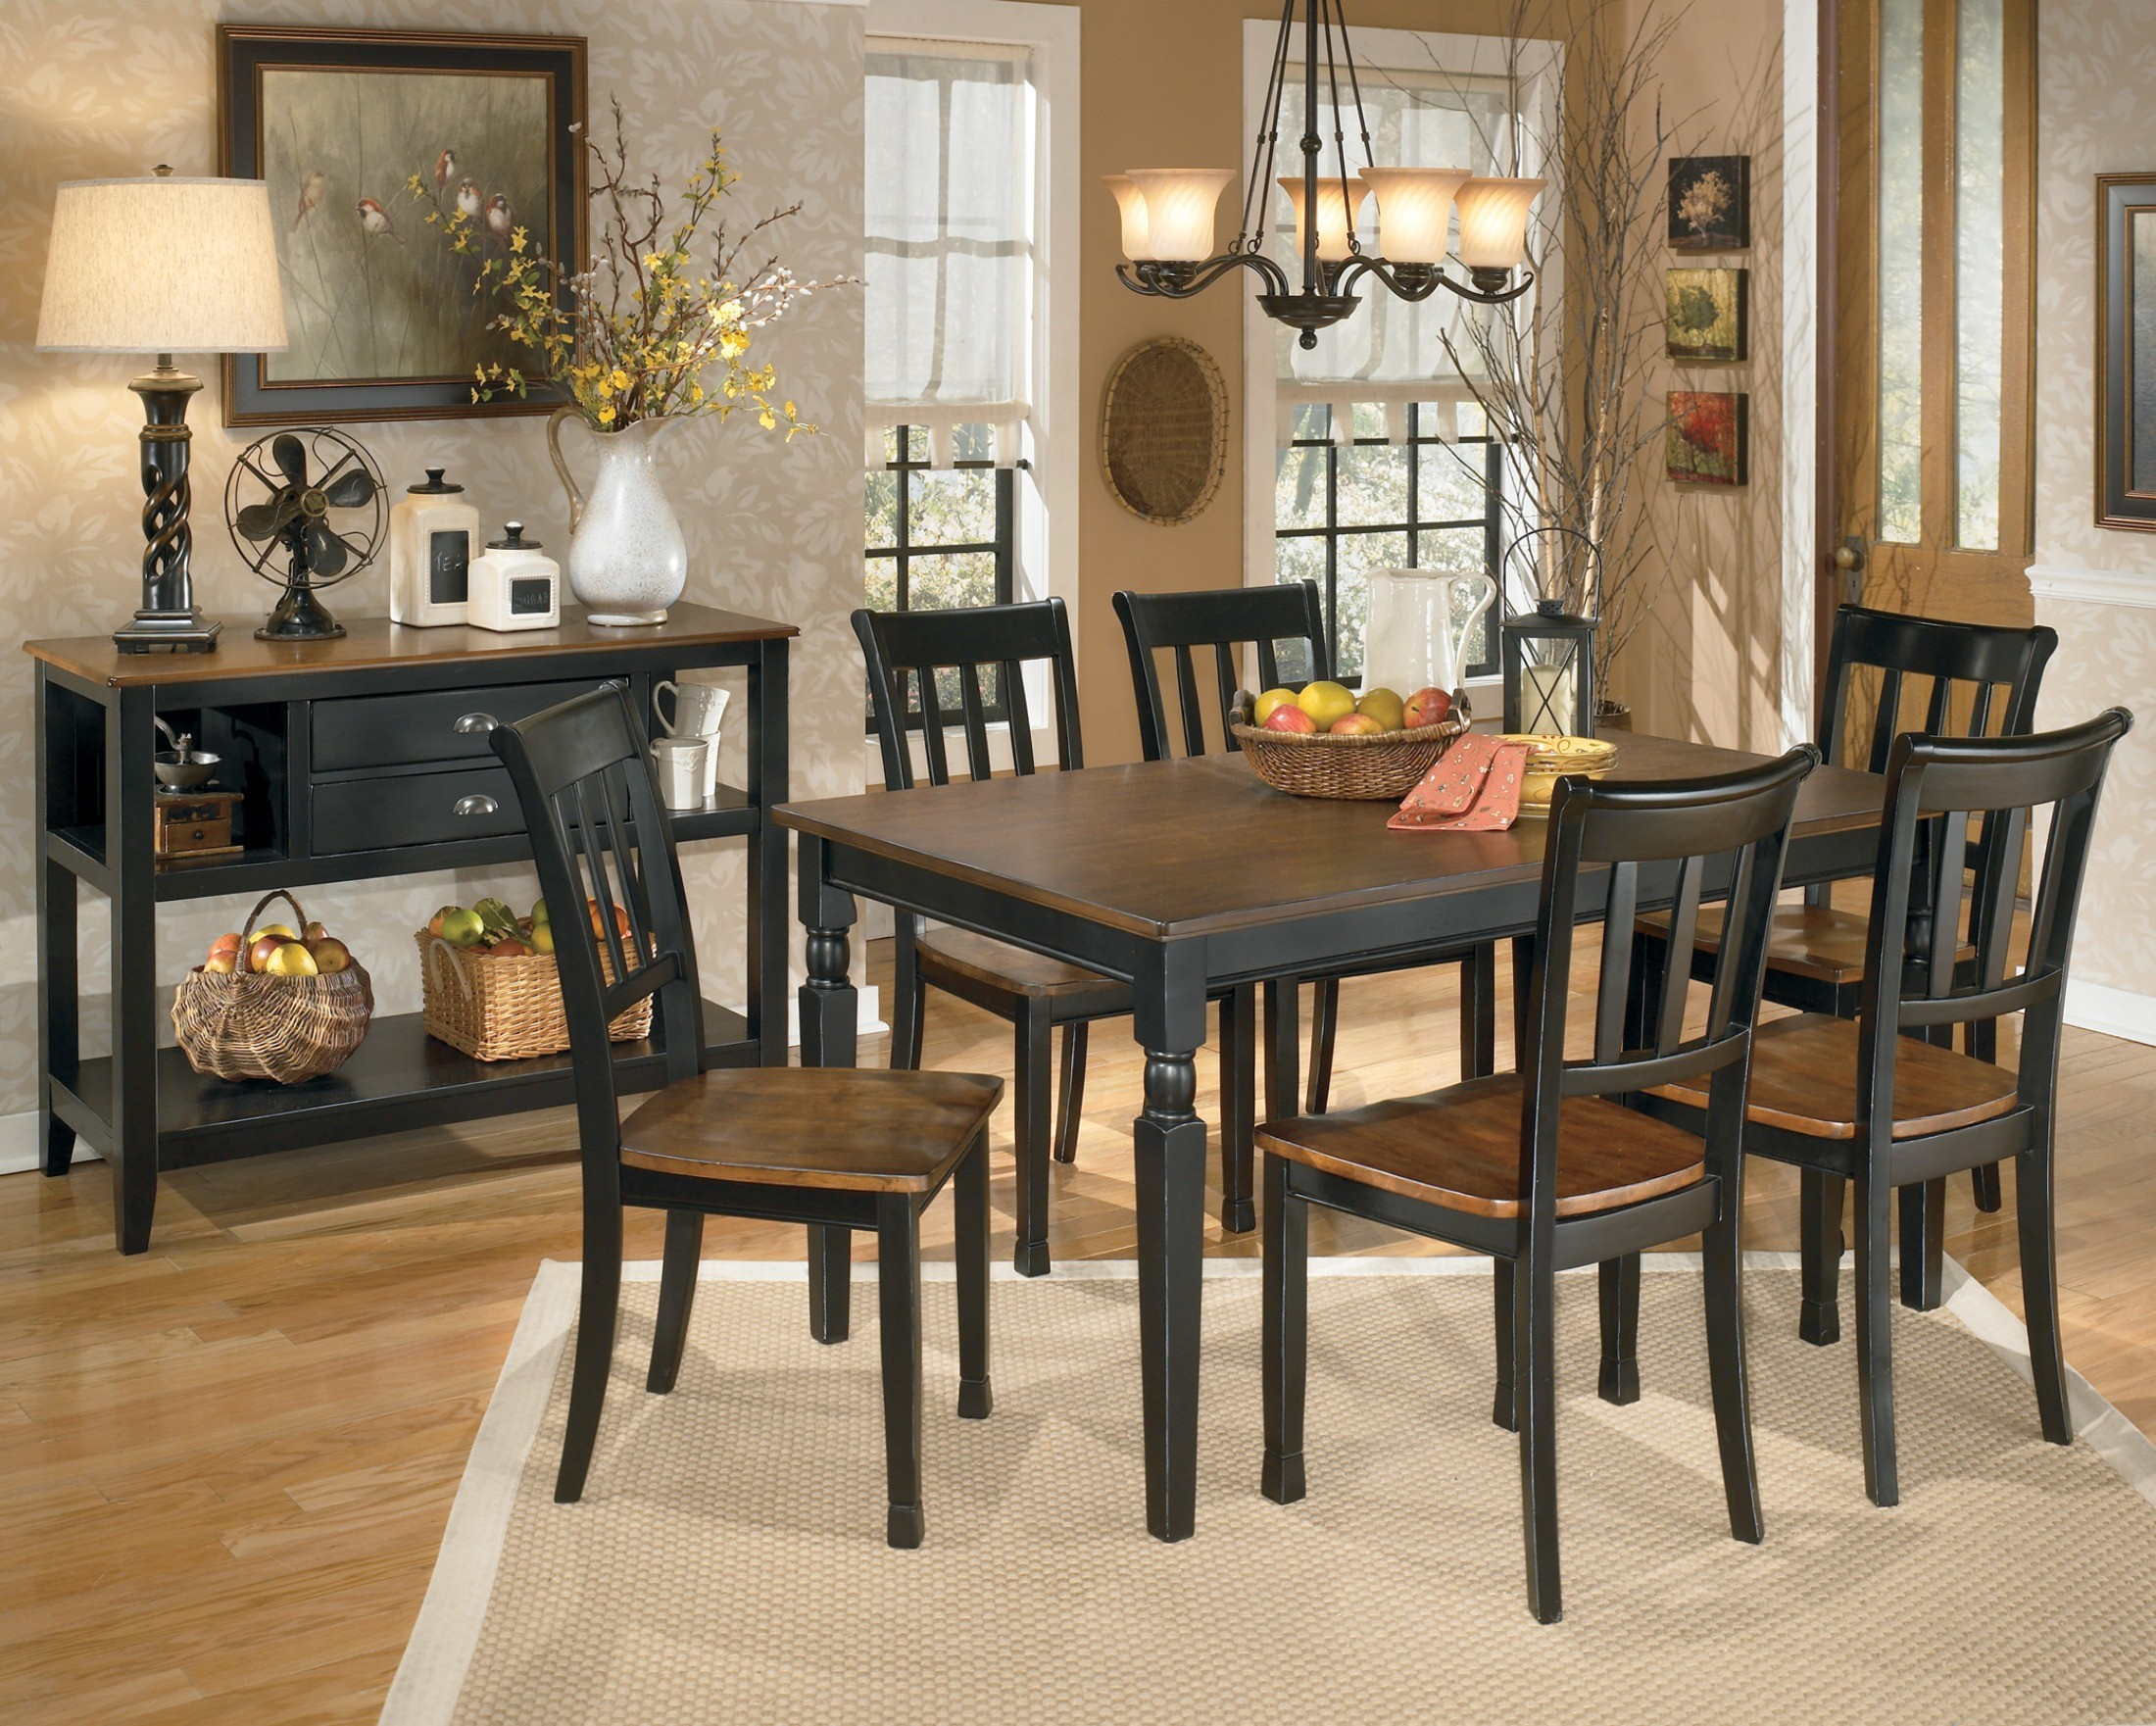 Owingsville Rectangular Dining Room Set from Ashley D580